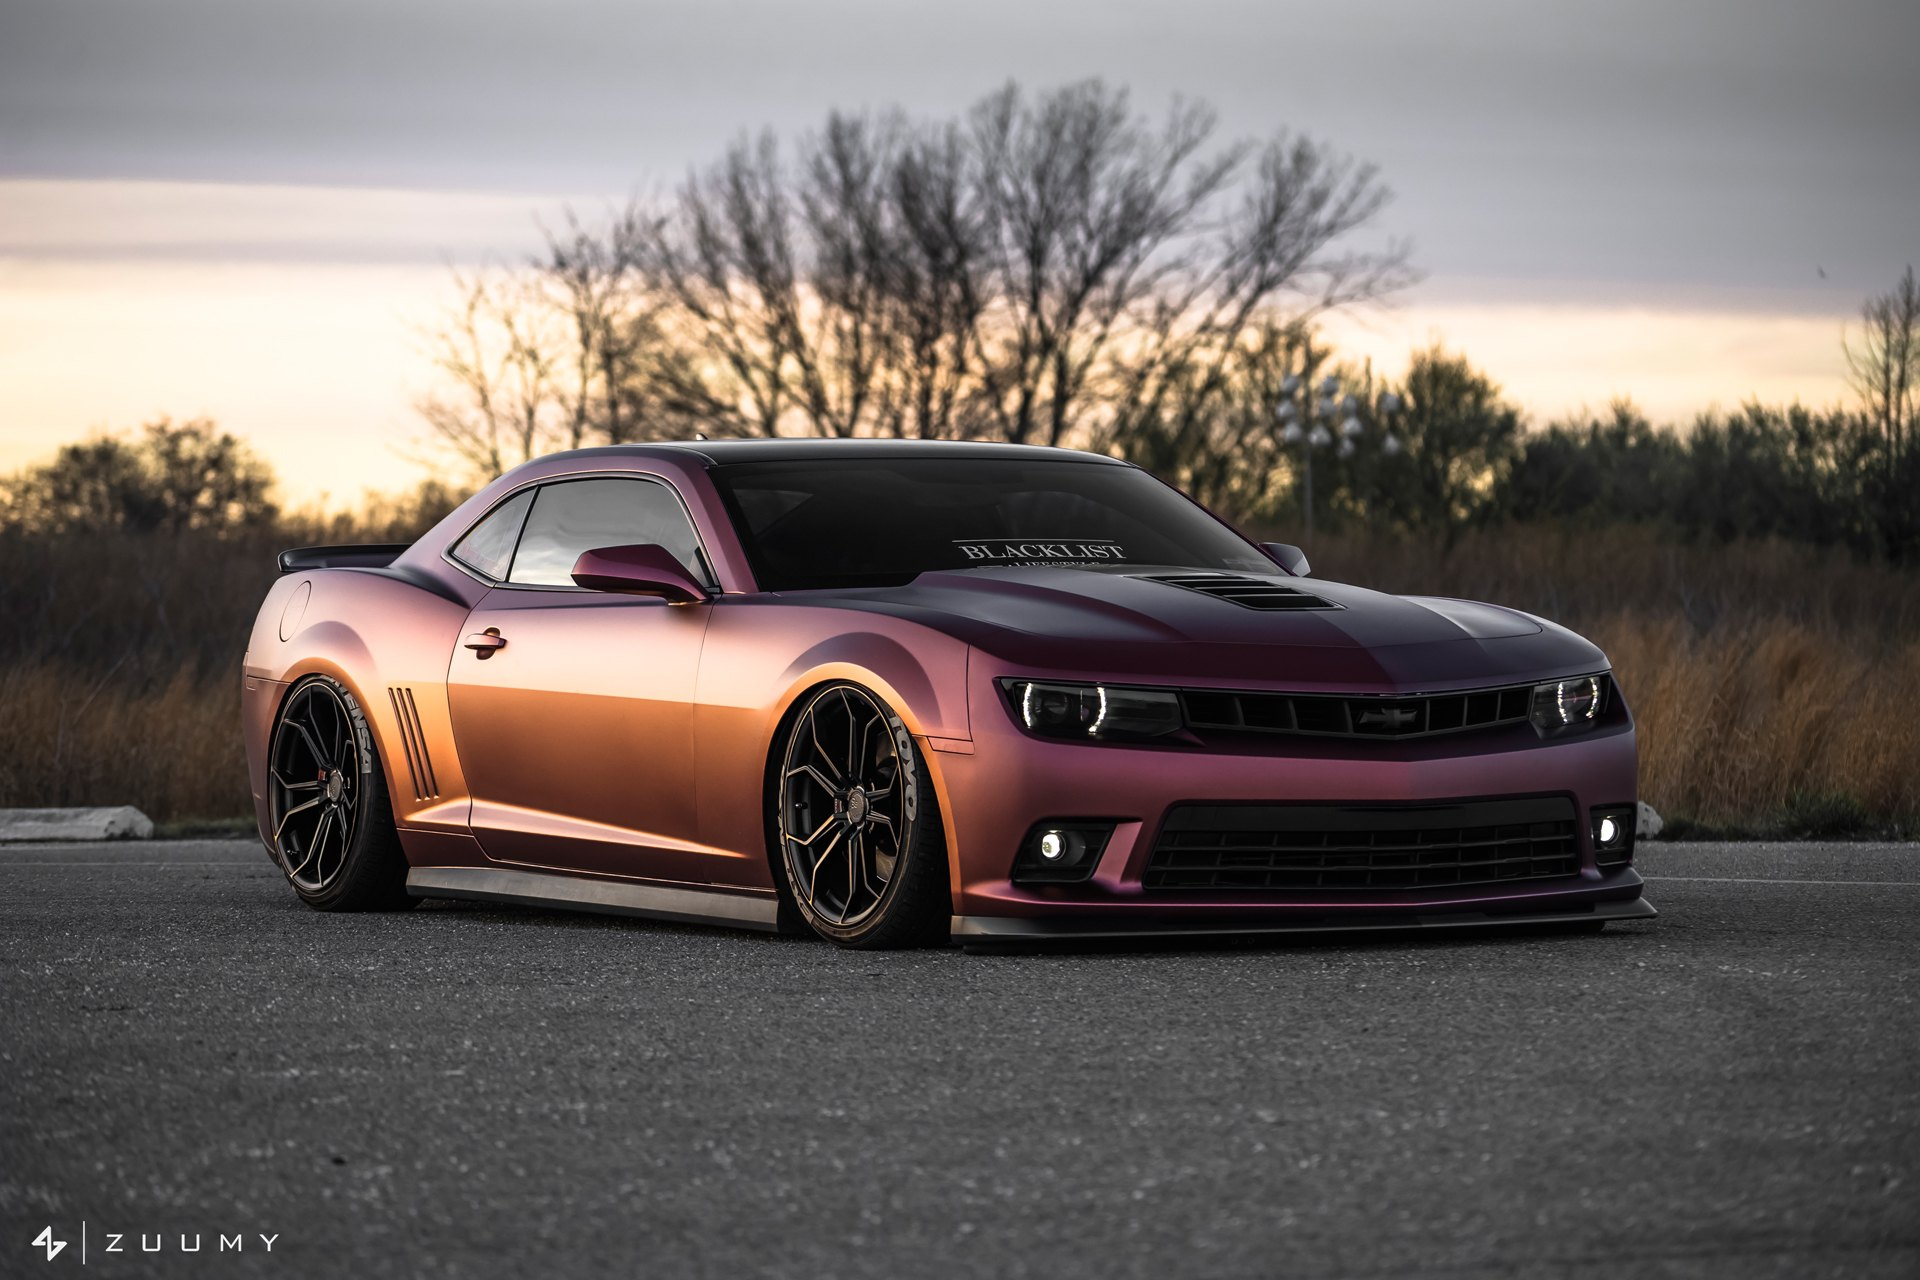 Chevy Camaro Z28 Slammed On Air Suspension Carid Com Gallery